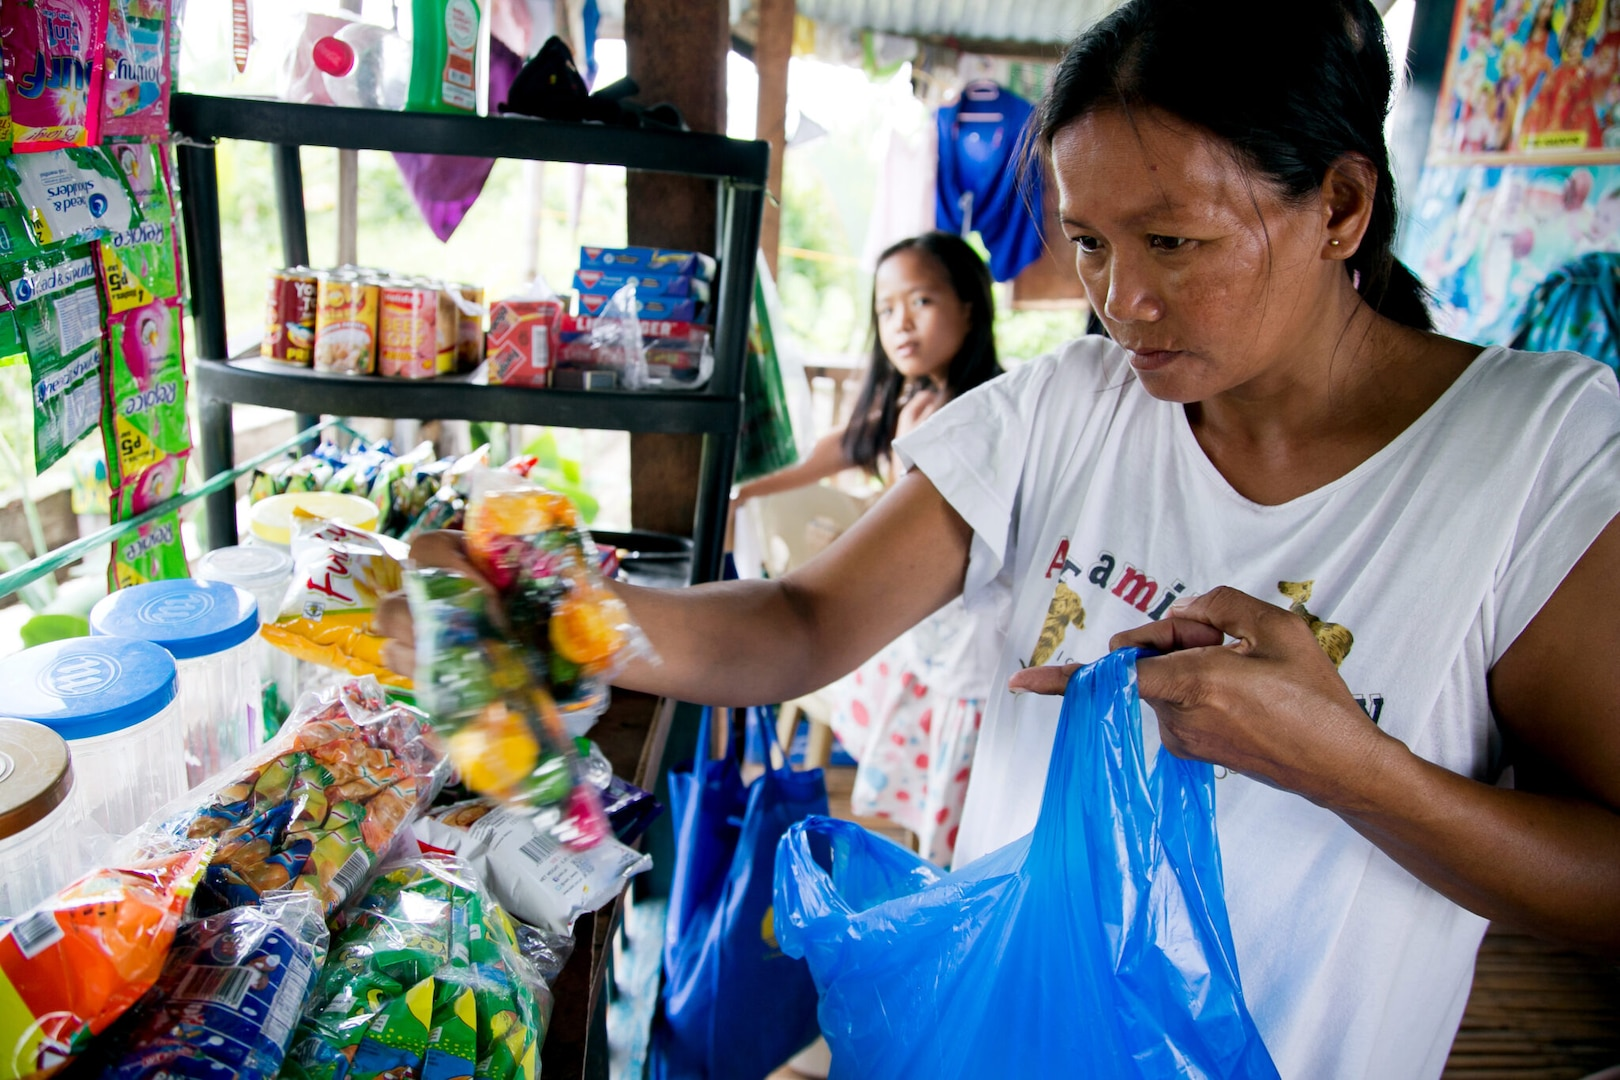 U.S. Government Provides Food Assistance for Conflict-Affected Families in Mindanao